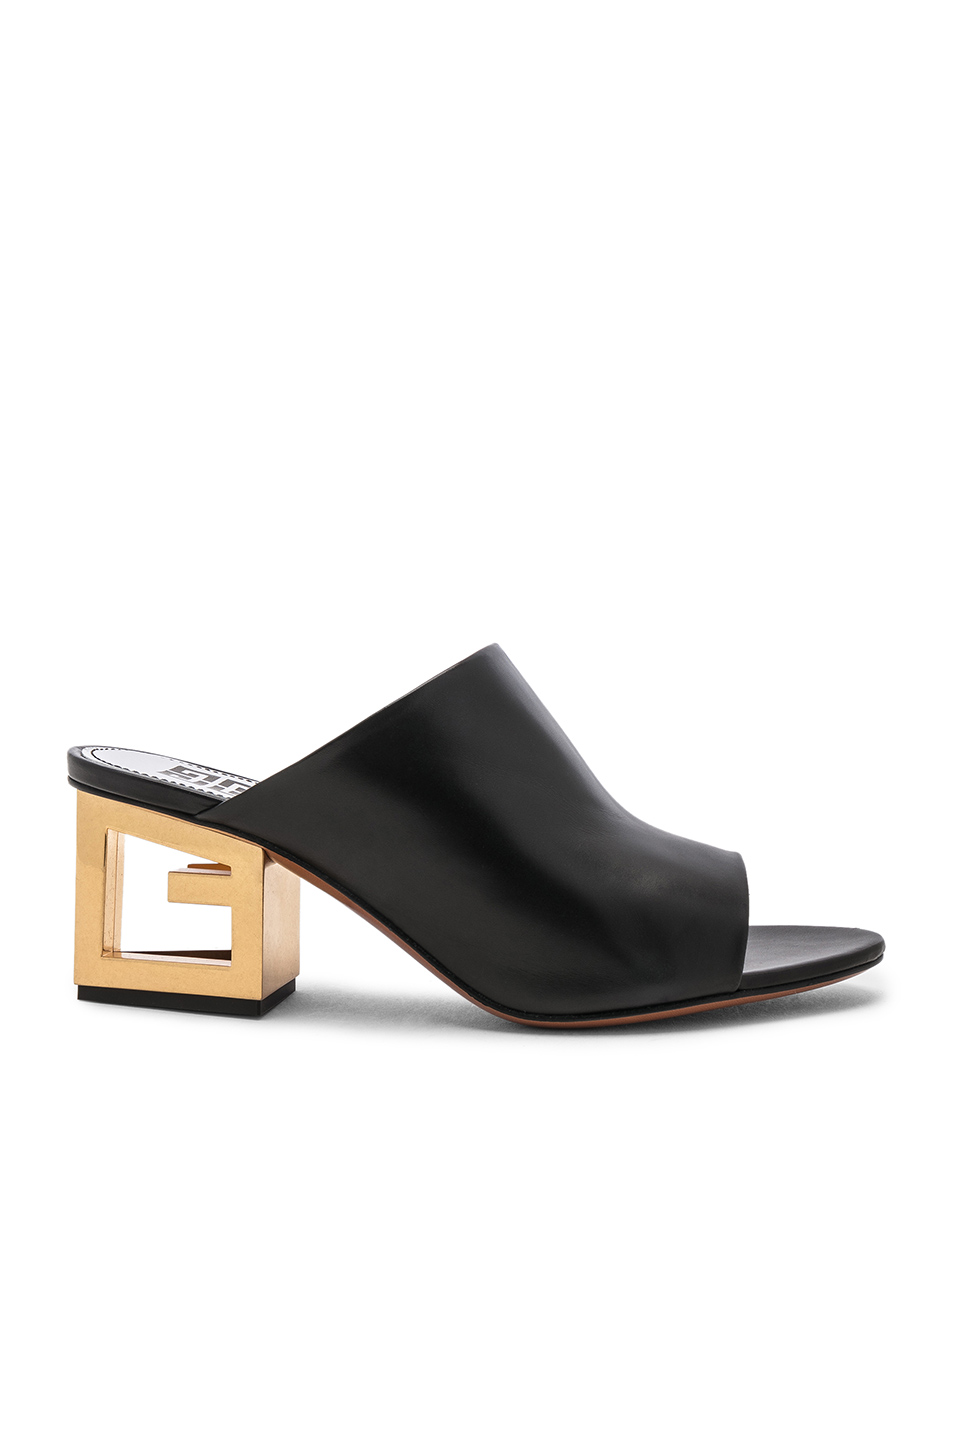 75ecfc09882 Givenchy Triangle Heel Mule  Givenchy Triangle Heel Mule ...